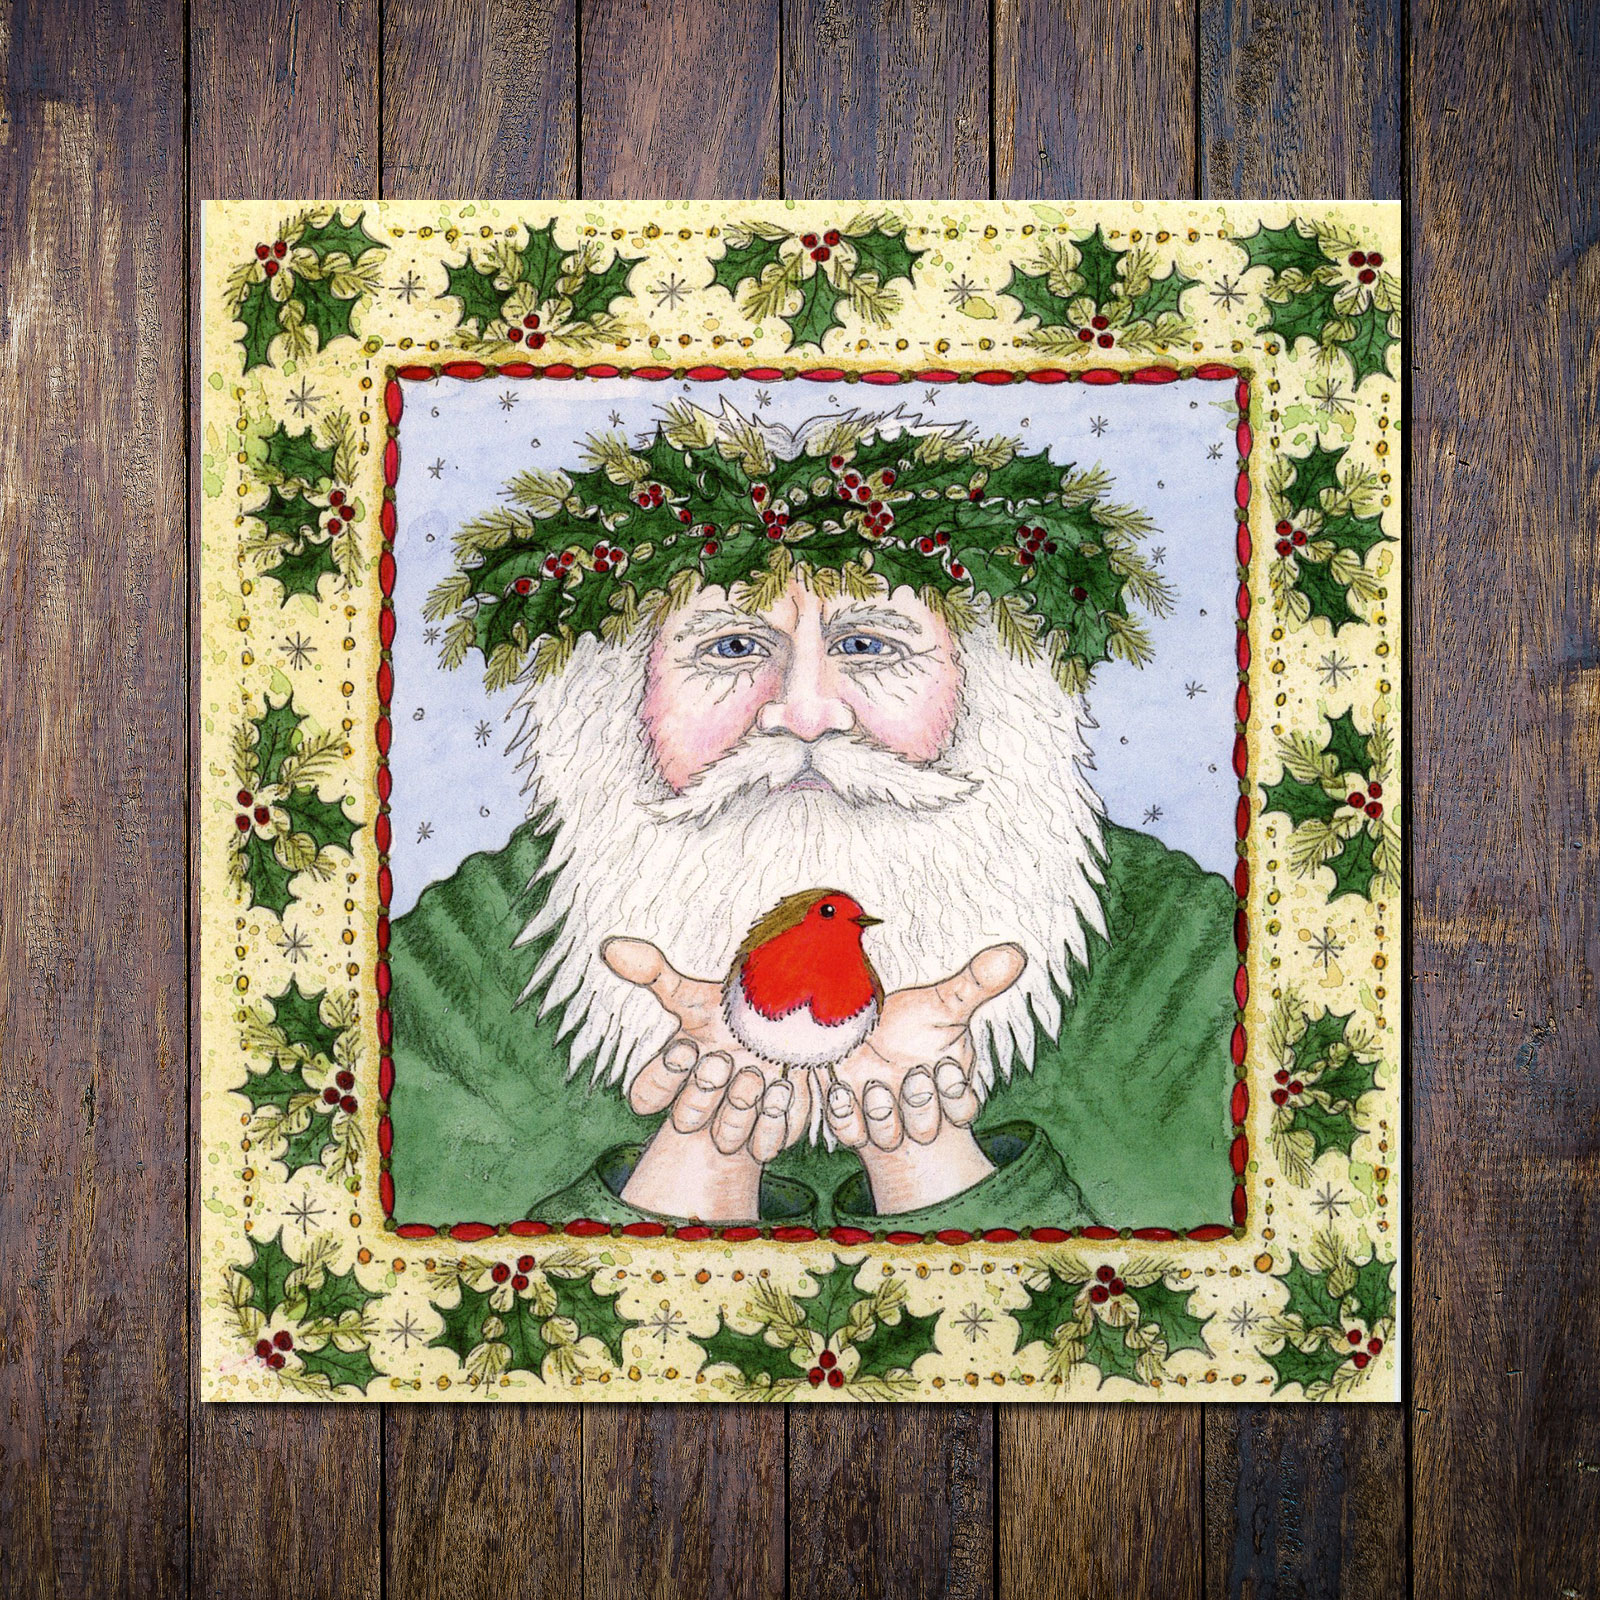 Yule Man with Robin Christmas Card, blank for your own message